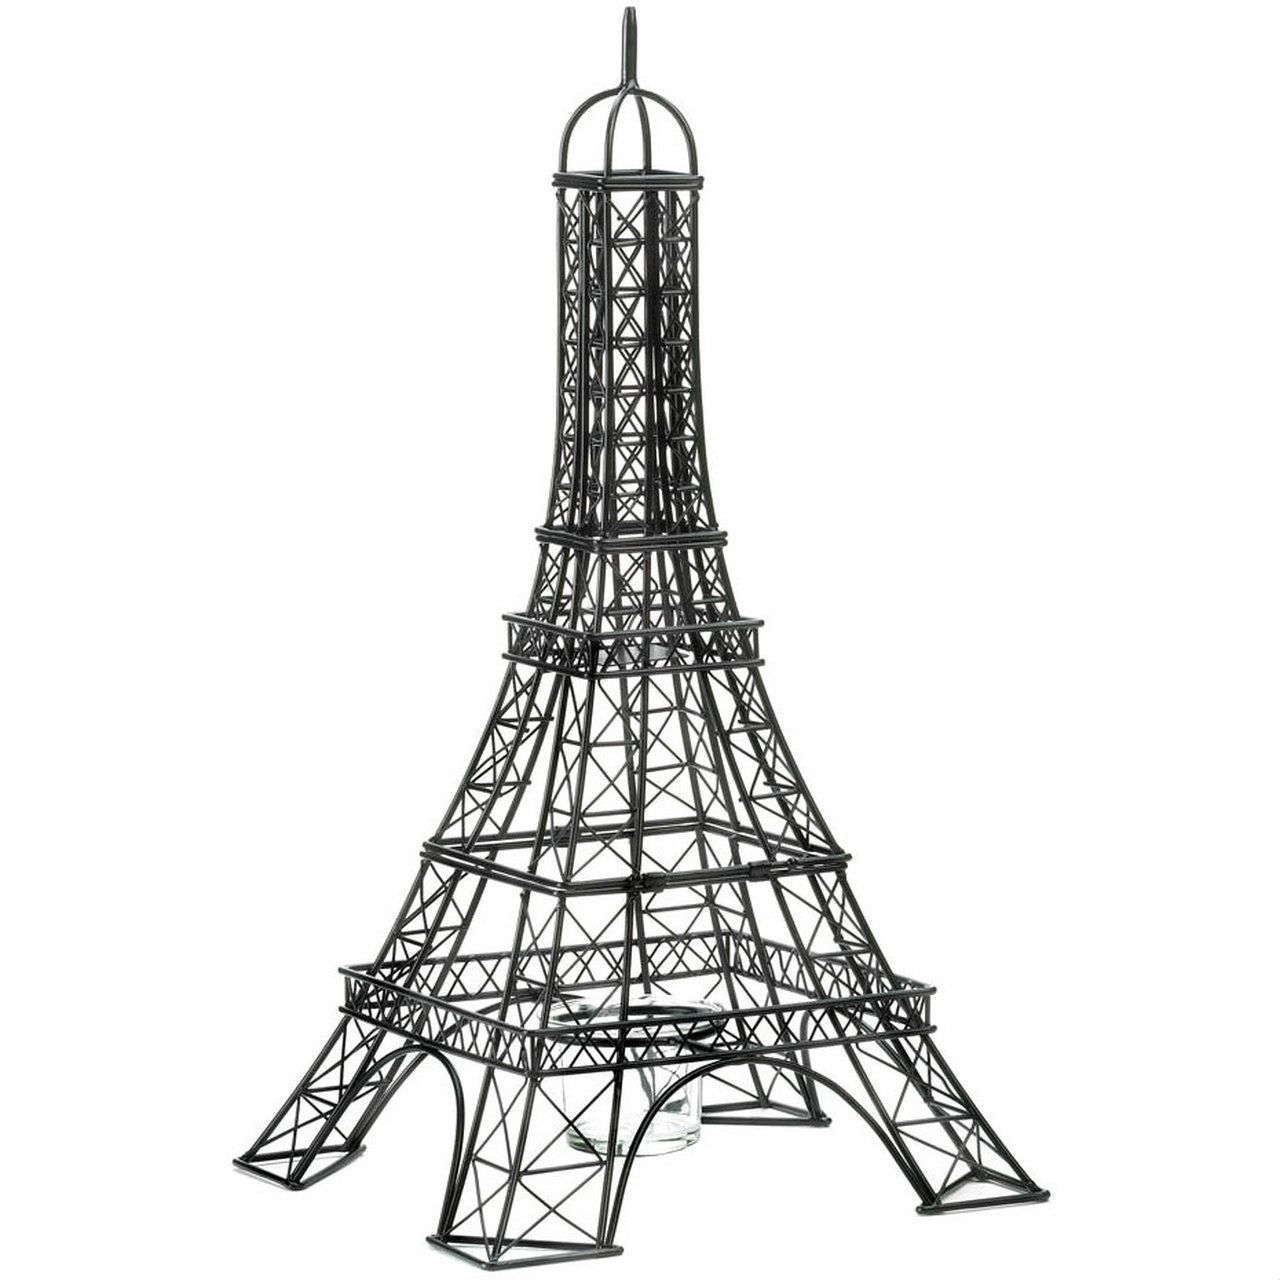 A And E Imports Eiffel Tower Metalwork Candle Holder Kolibrie